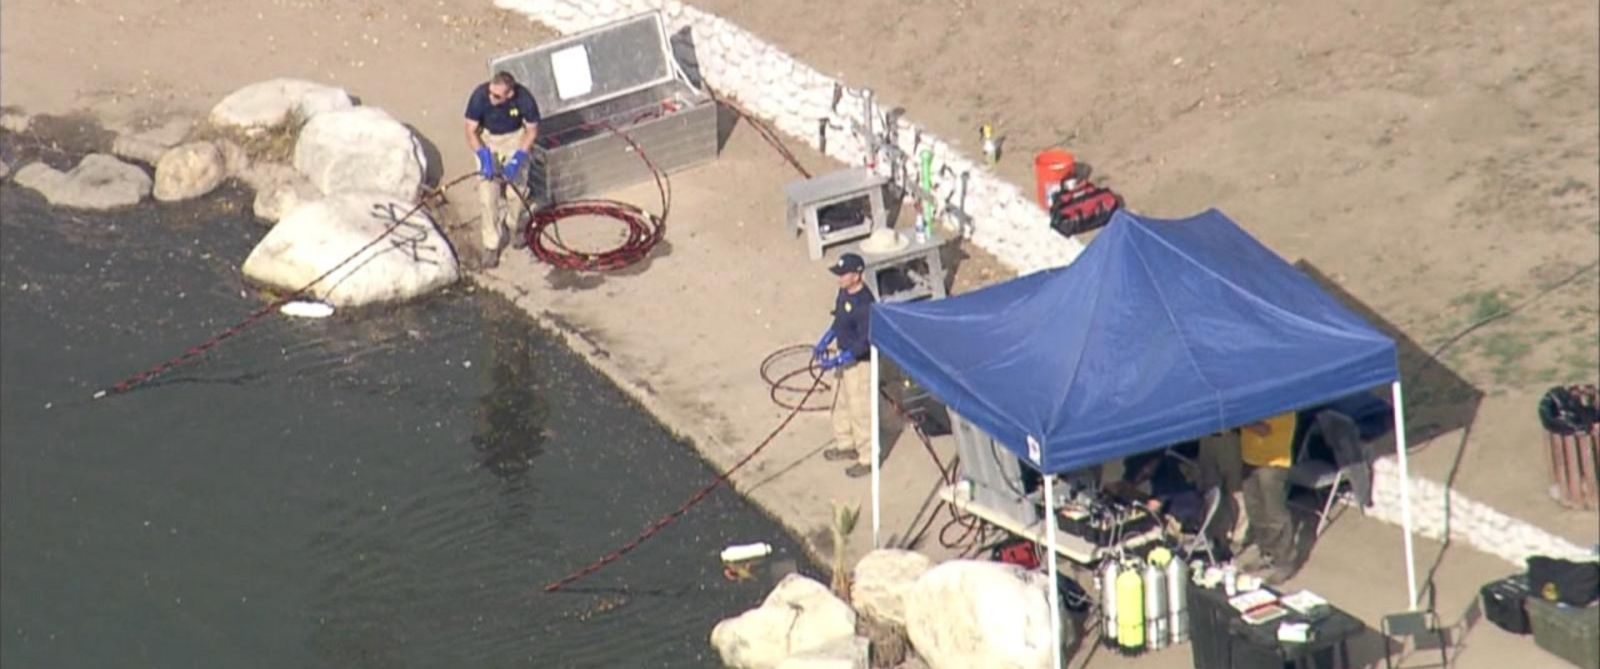 PHOTO: FBI dive teams search Seccombe Lake Park in San Bernardino, Calif. on Dec. 10, 2015 in connection to a mass shooting in San Bernardino earlier in the month.